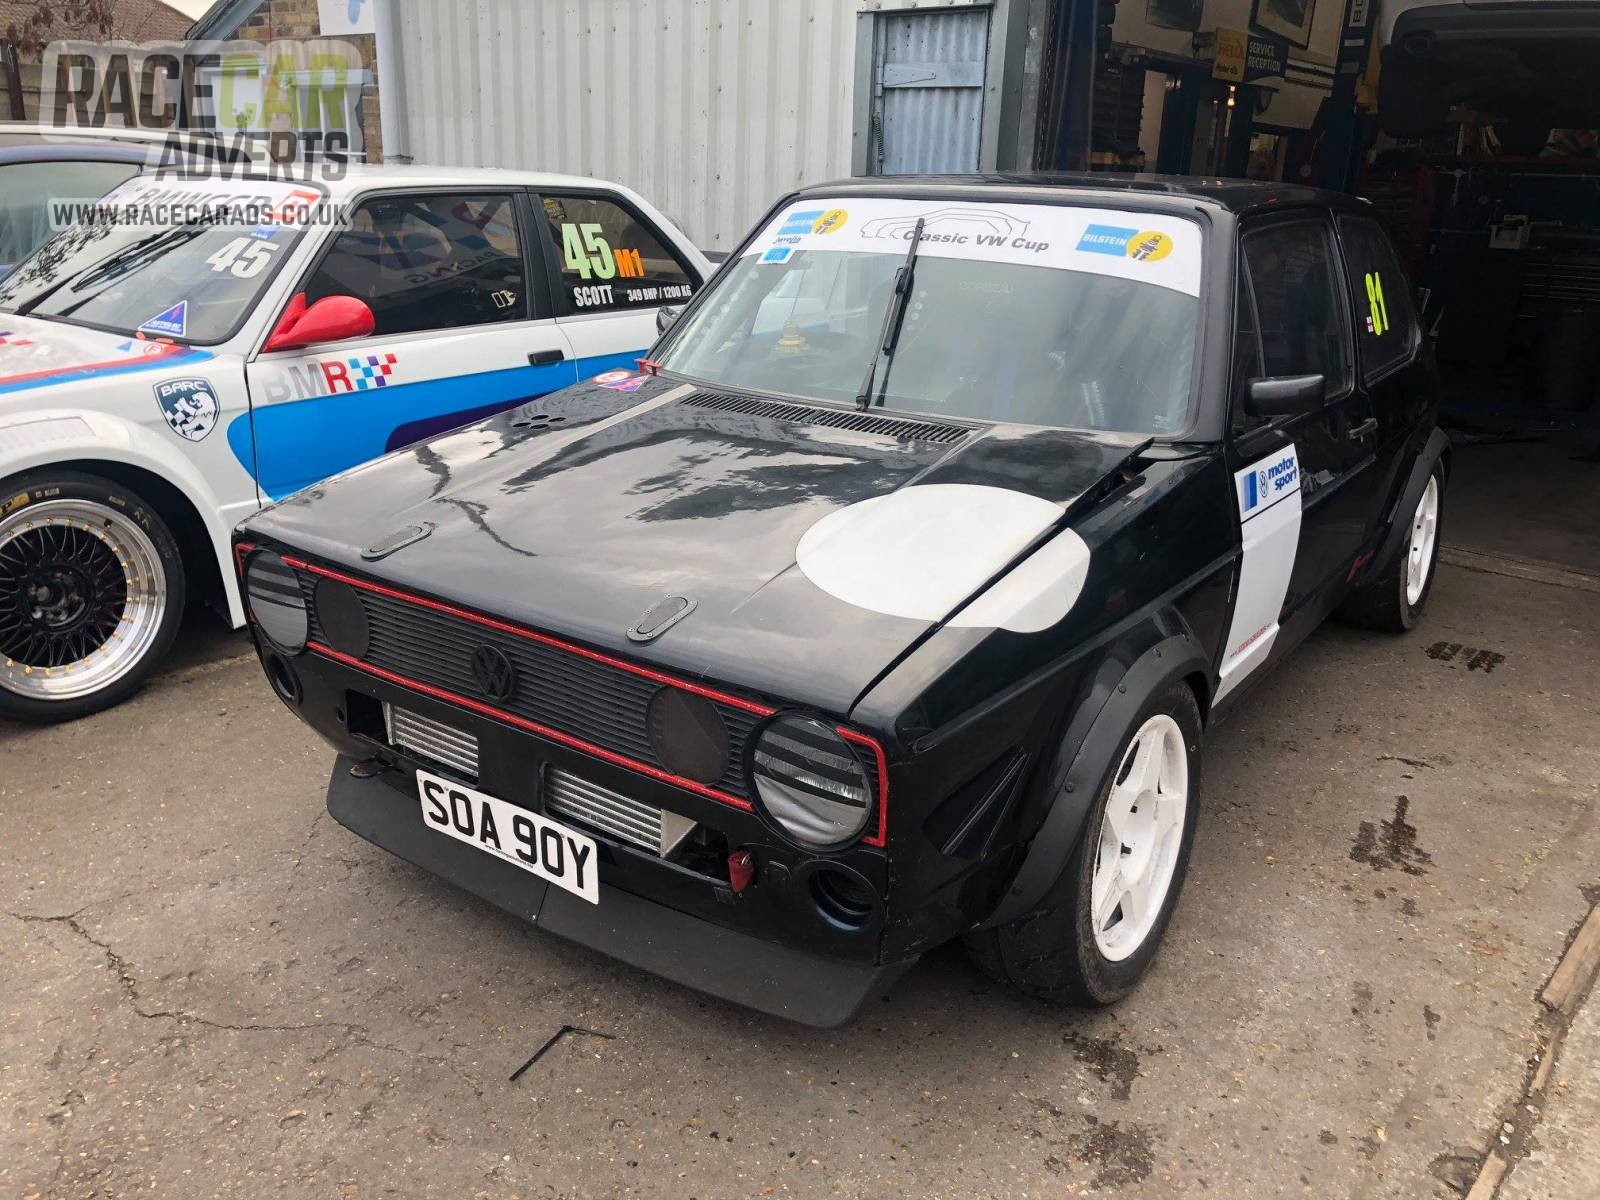 volkswagen golf mk turbo race saloons race cars race car adverts